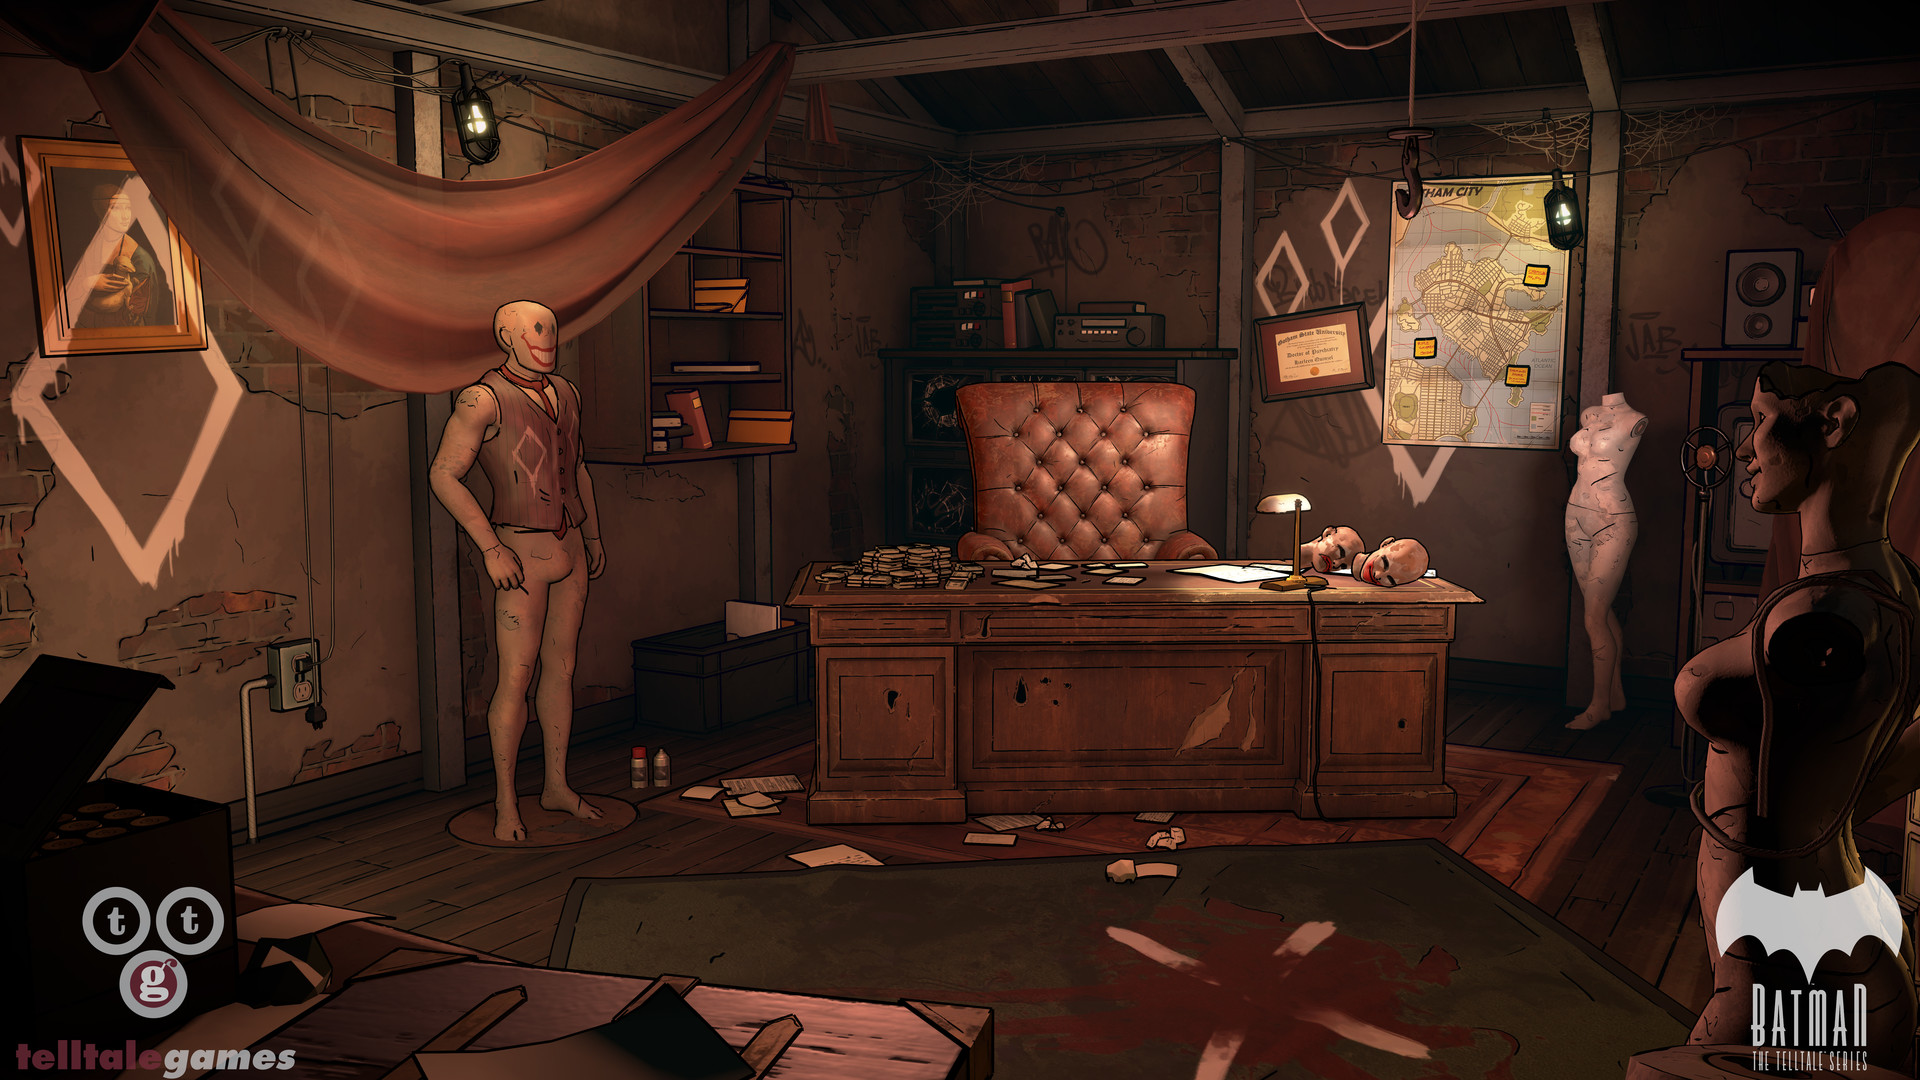 Adam chandler harleyoffice2